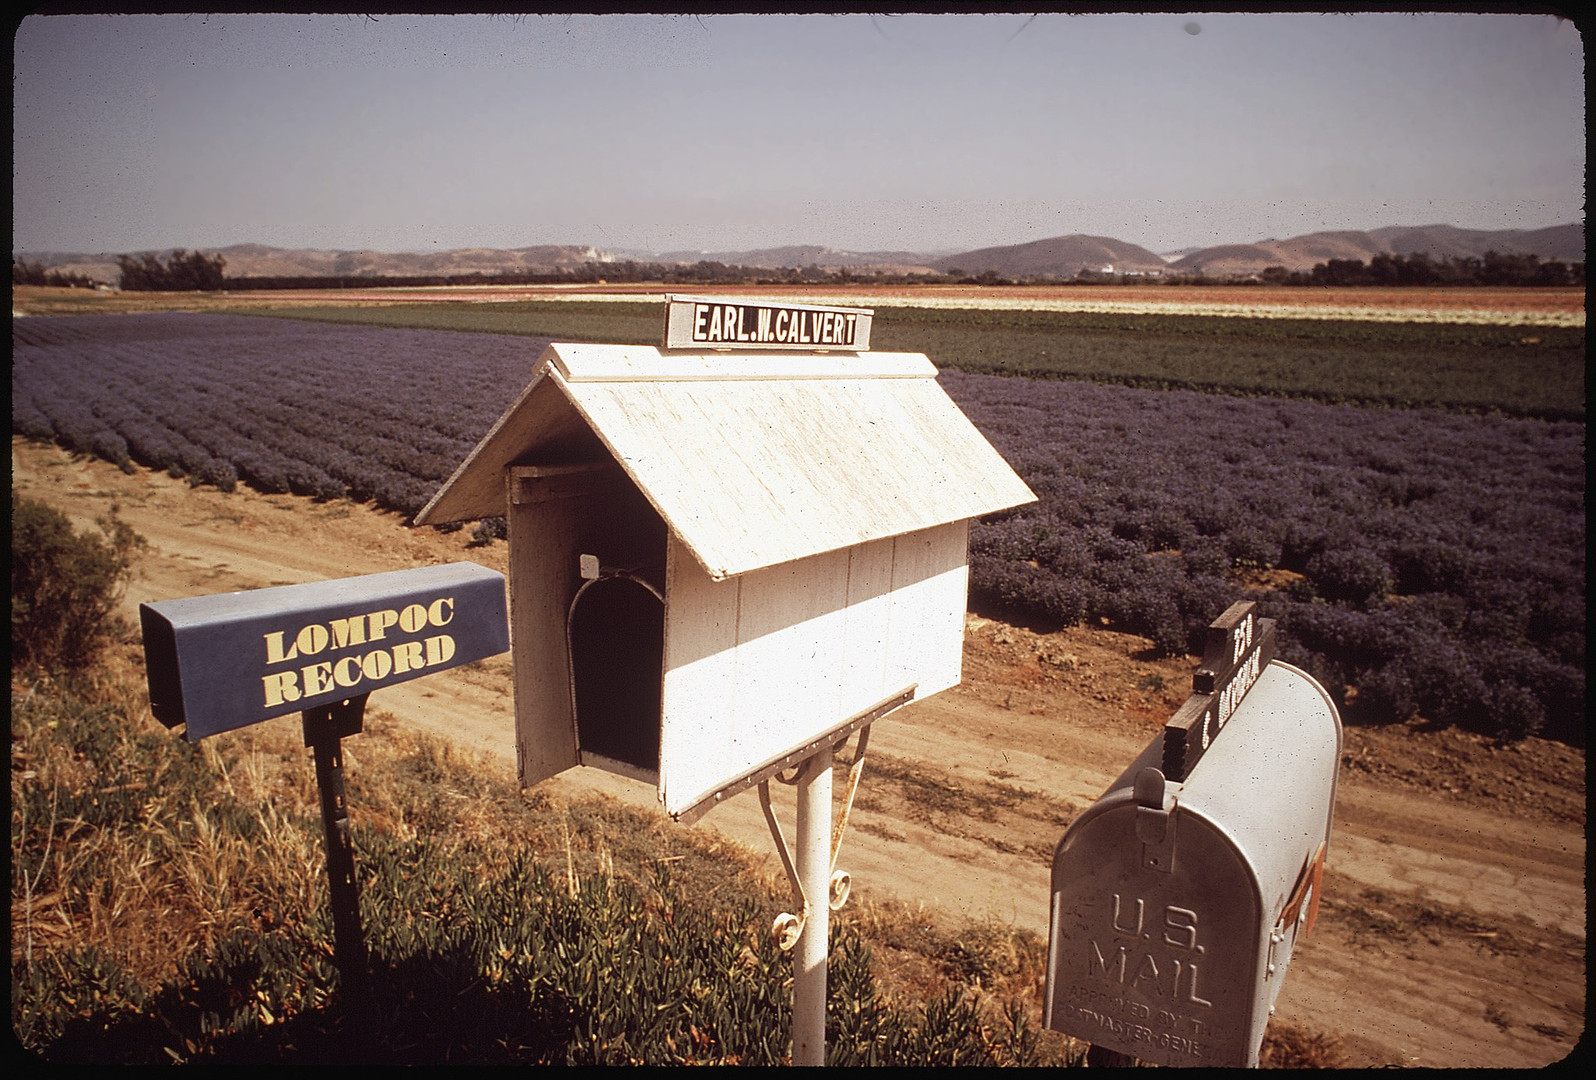 San Narciso, California, 1969.